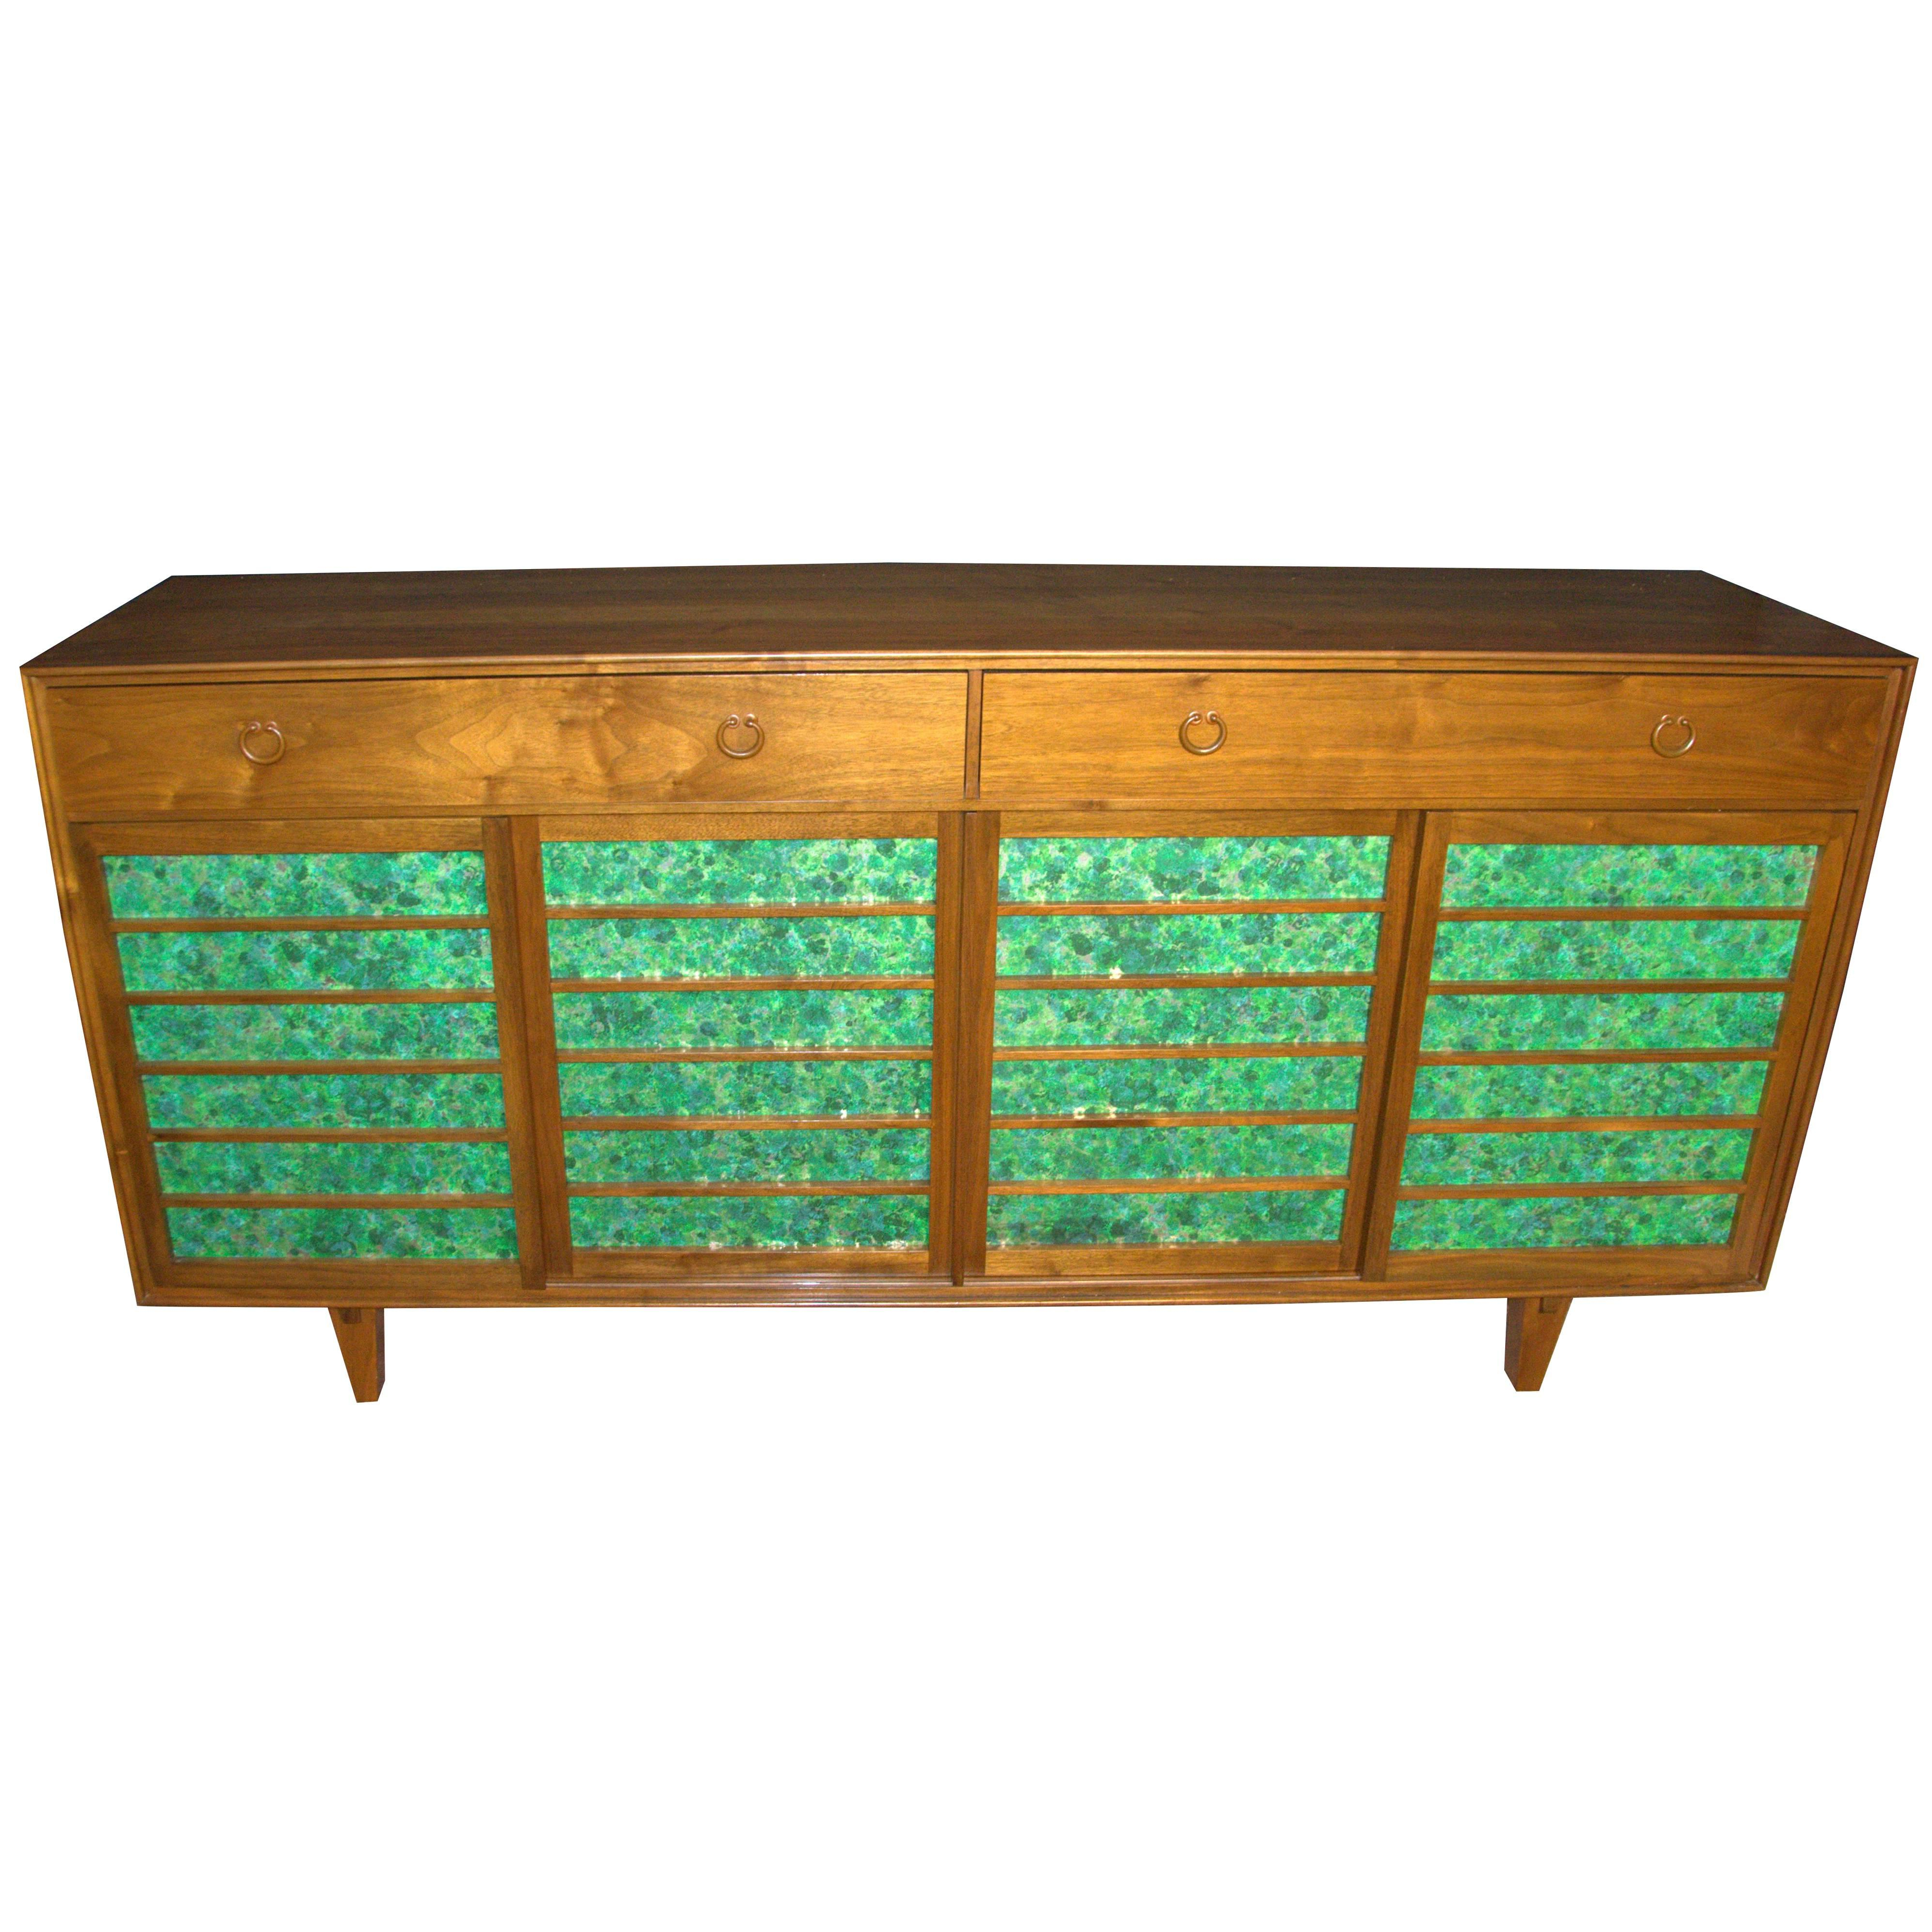 Dunbar Sideboards – 37 For Sale At 1stdibs With Regard To Gertrude Sideboards (View 12 of 20)